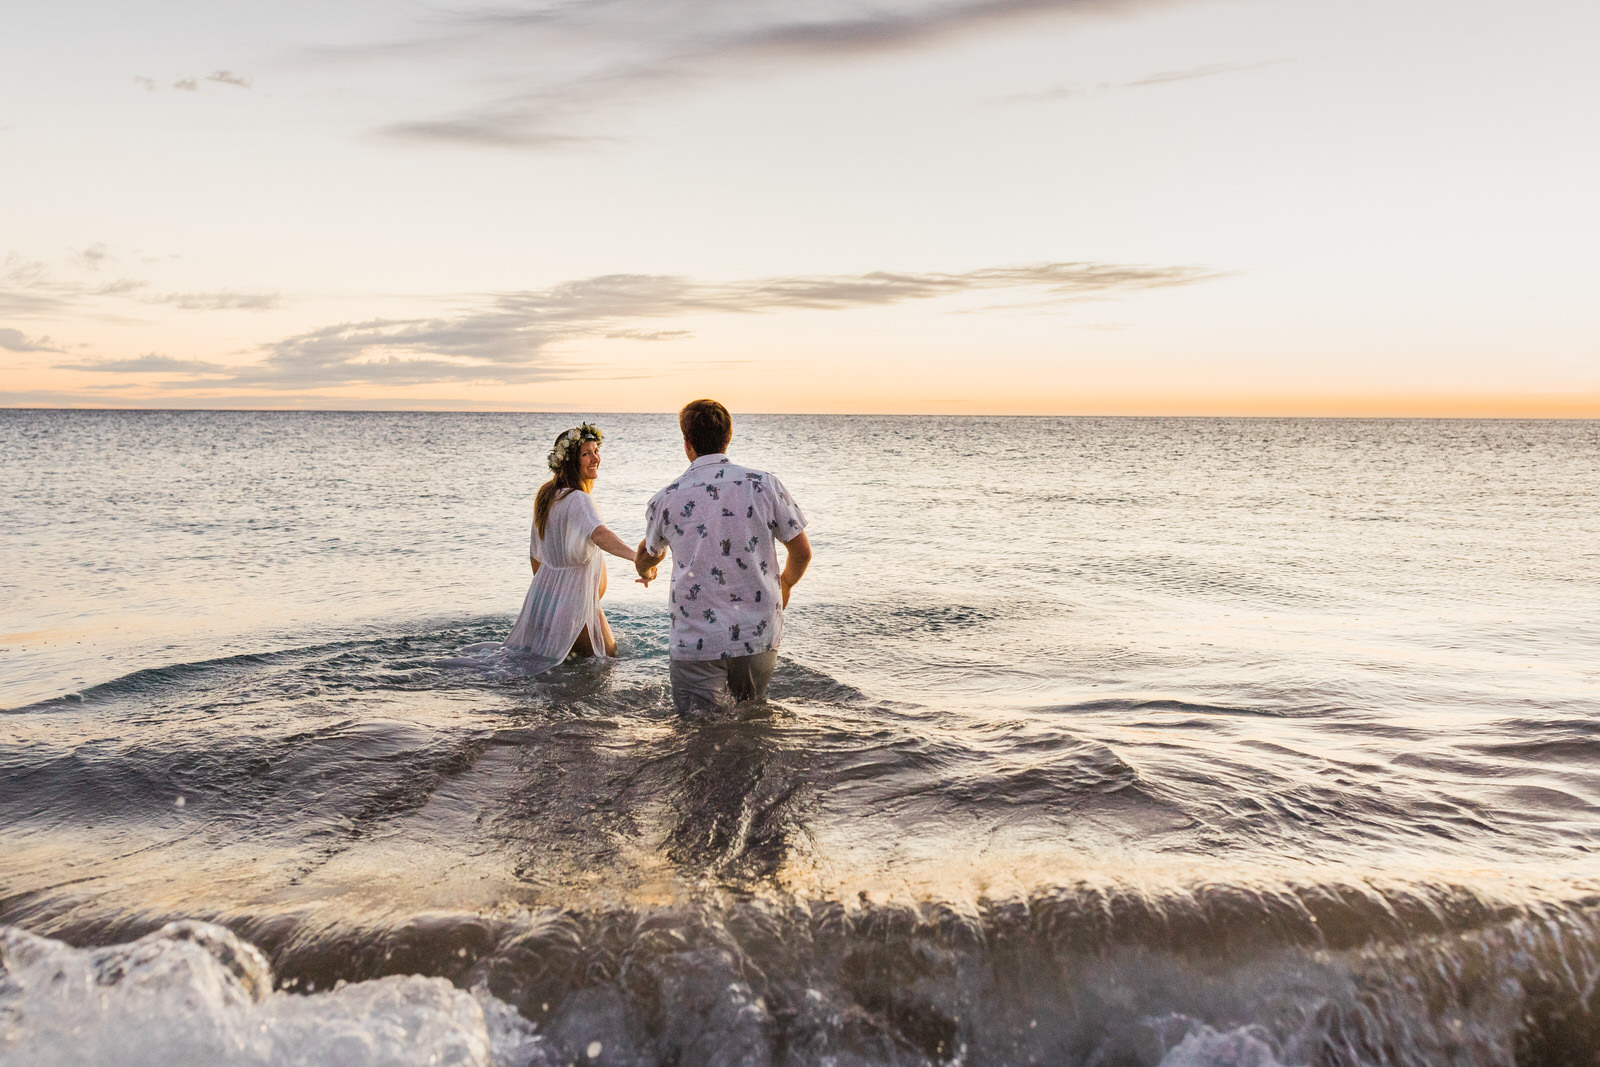 maternity-hawaii-big-island-photography-couple-babymoon-sunset-hapuna-waikoloa-4714.jpg